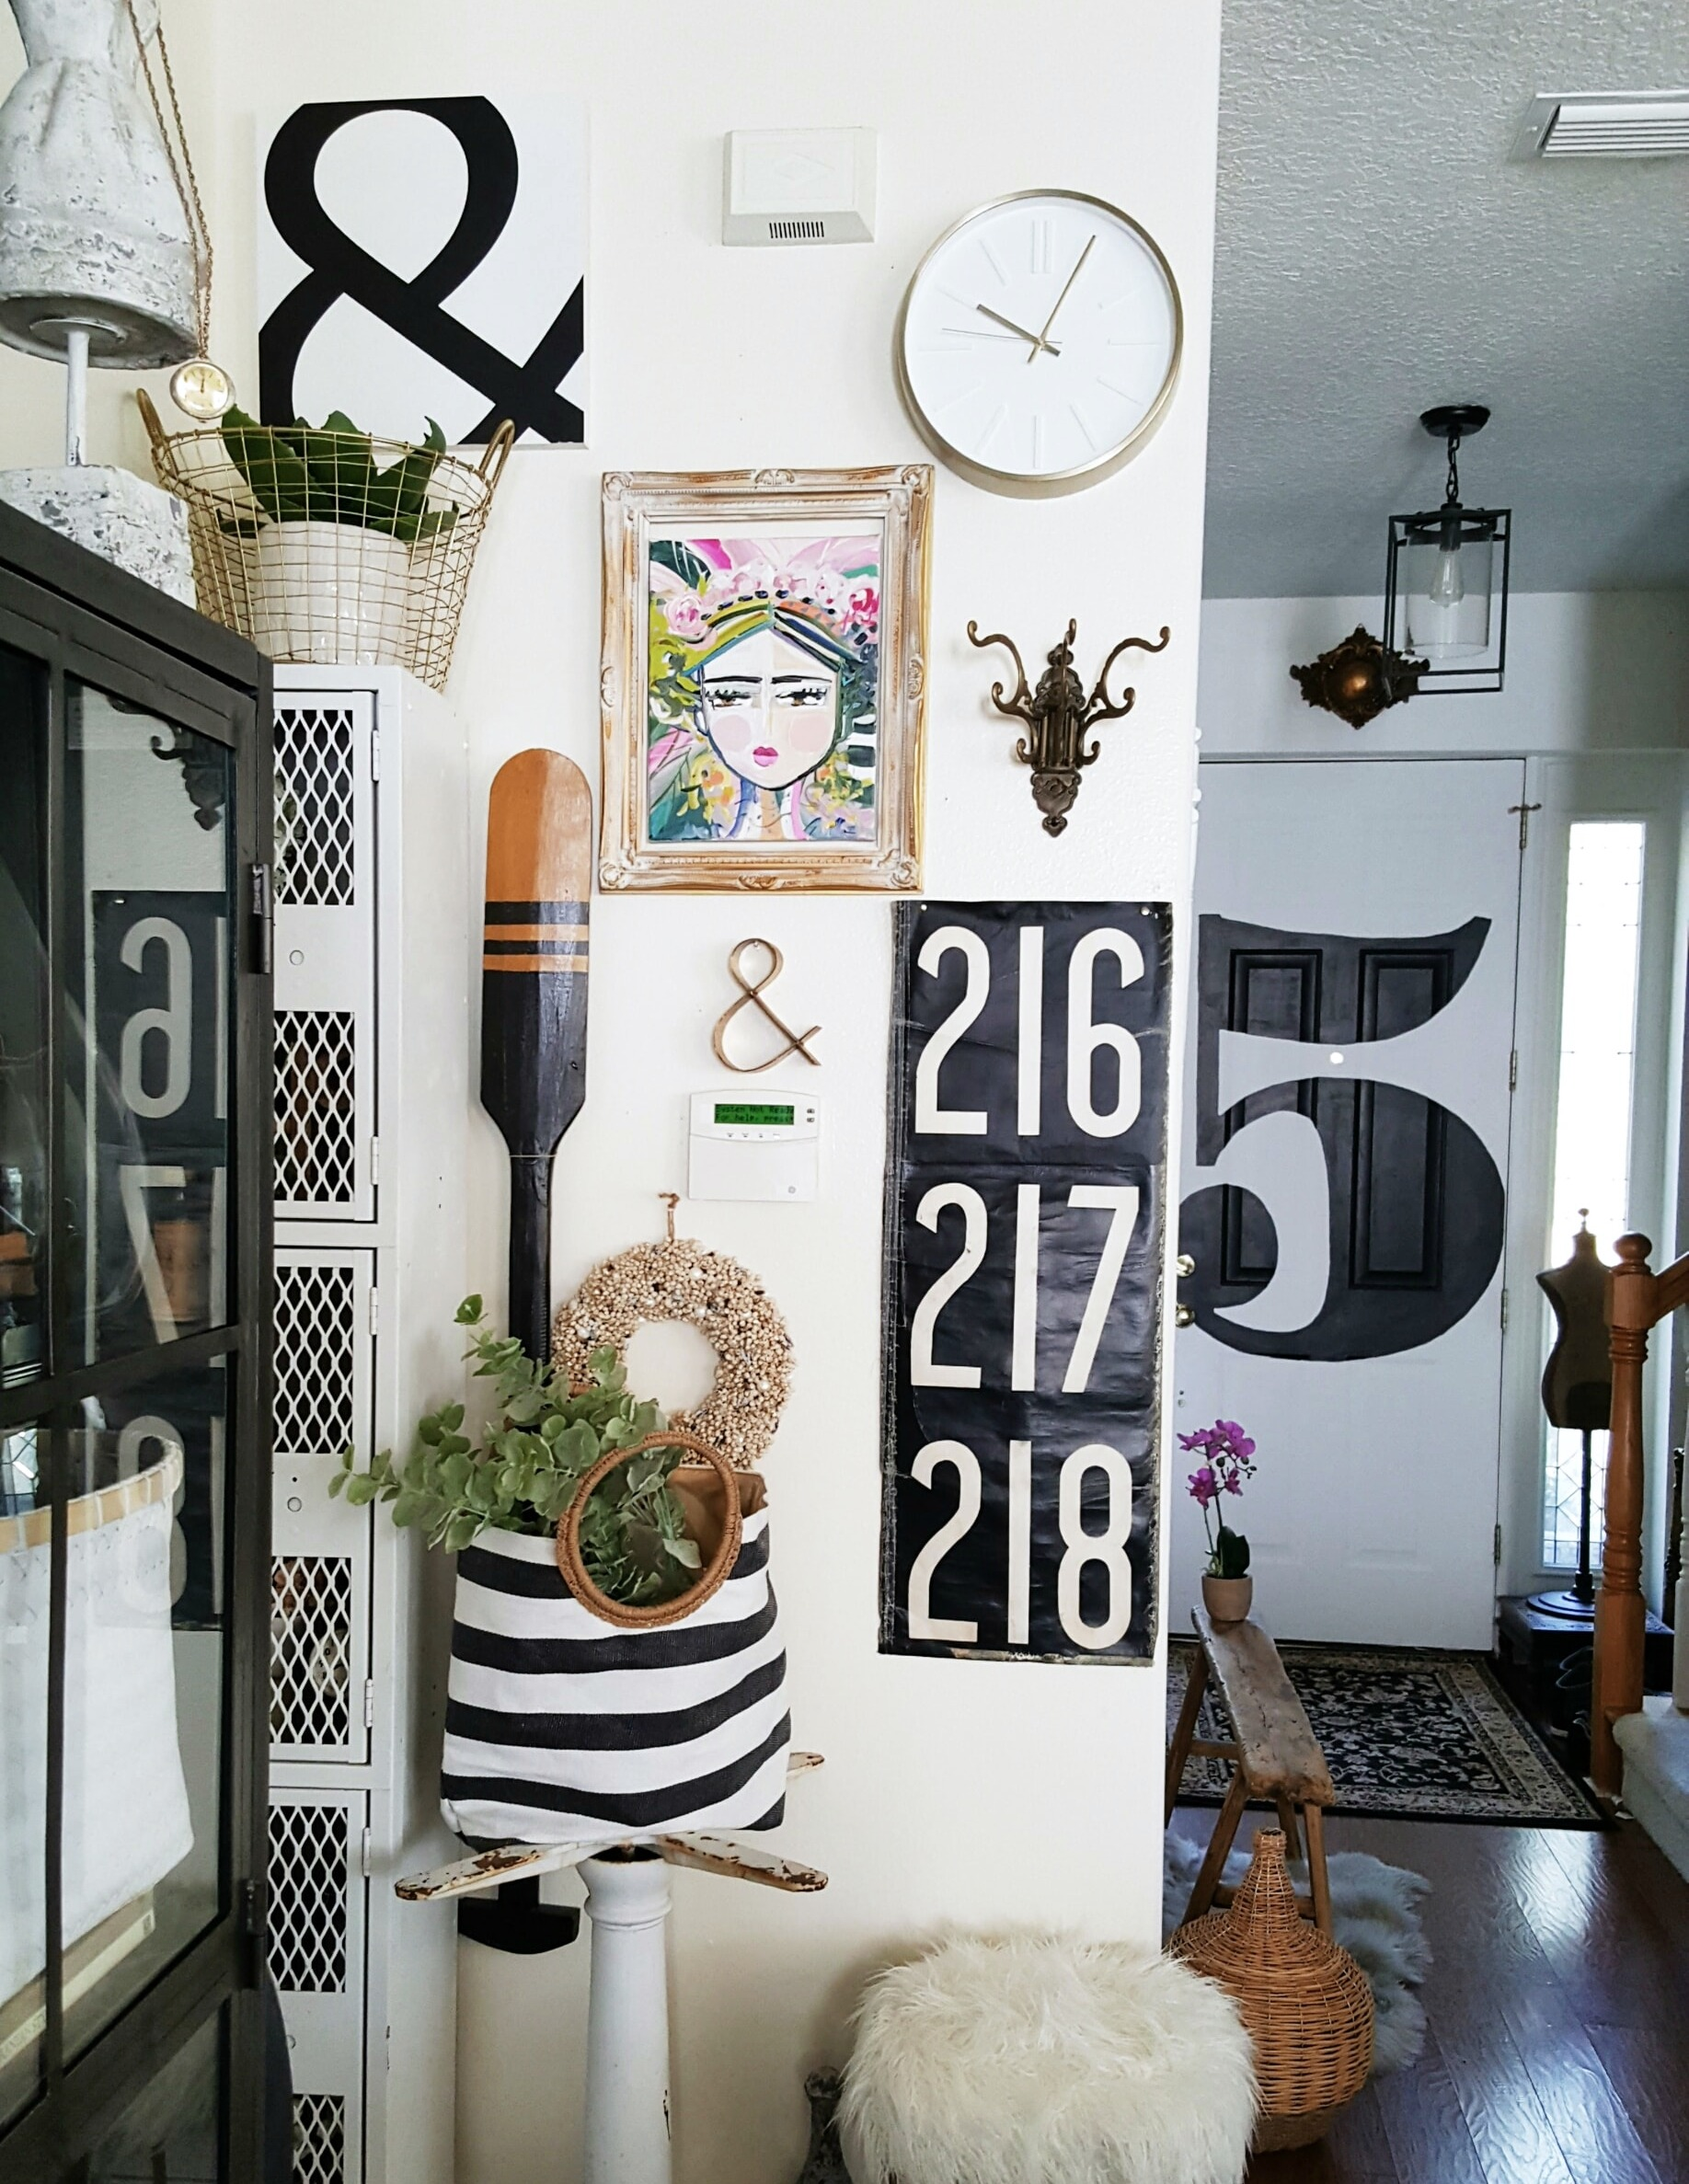 Eclectic Collected Vintage Modern Home Tour - Black and white gallery wall door decor painted typography number